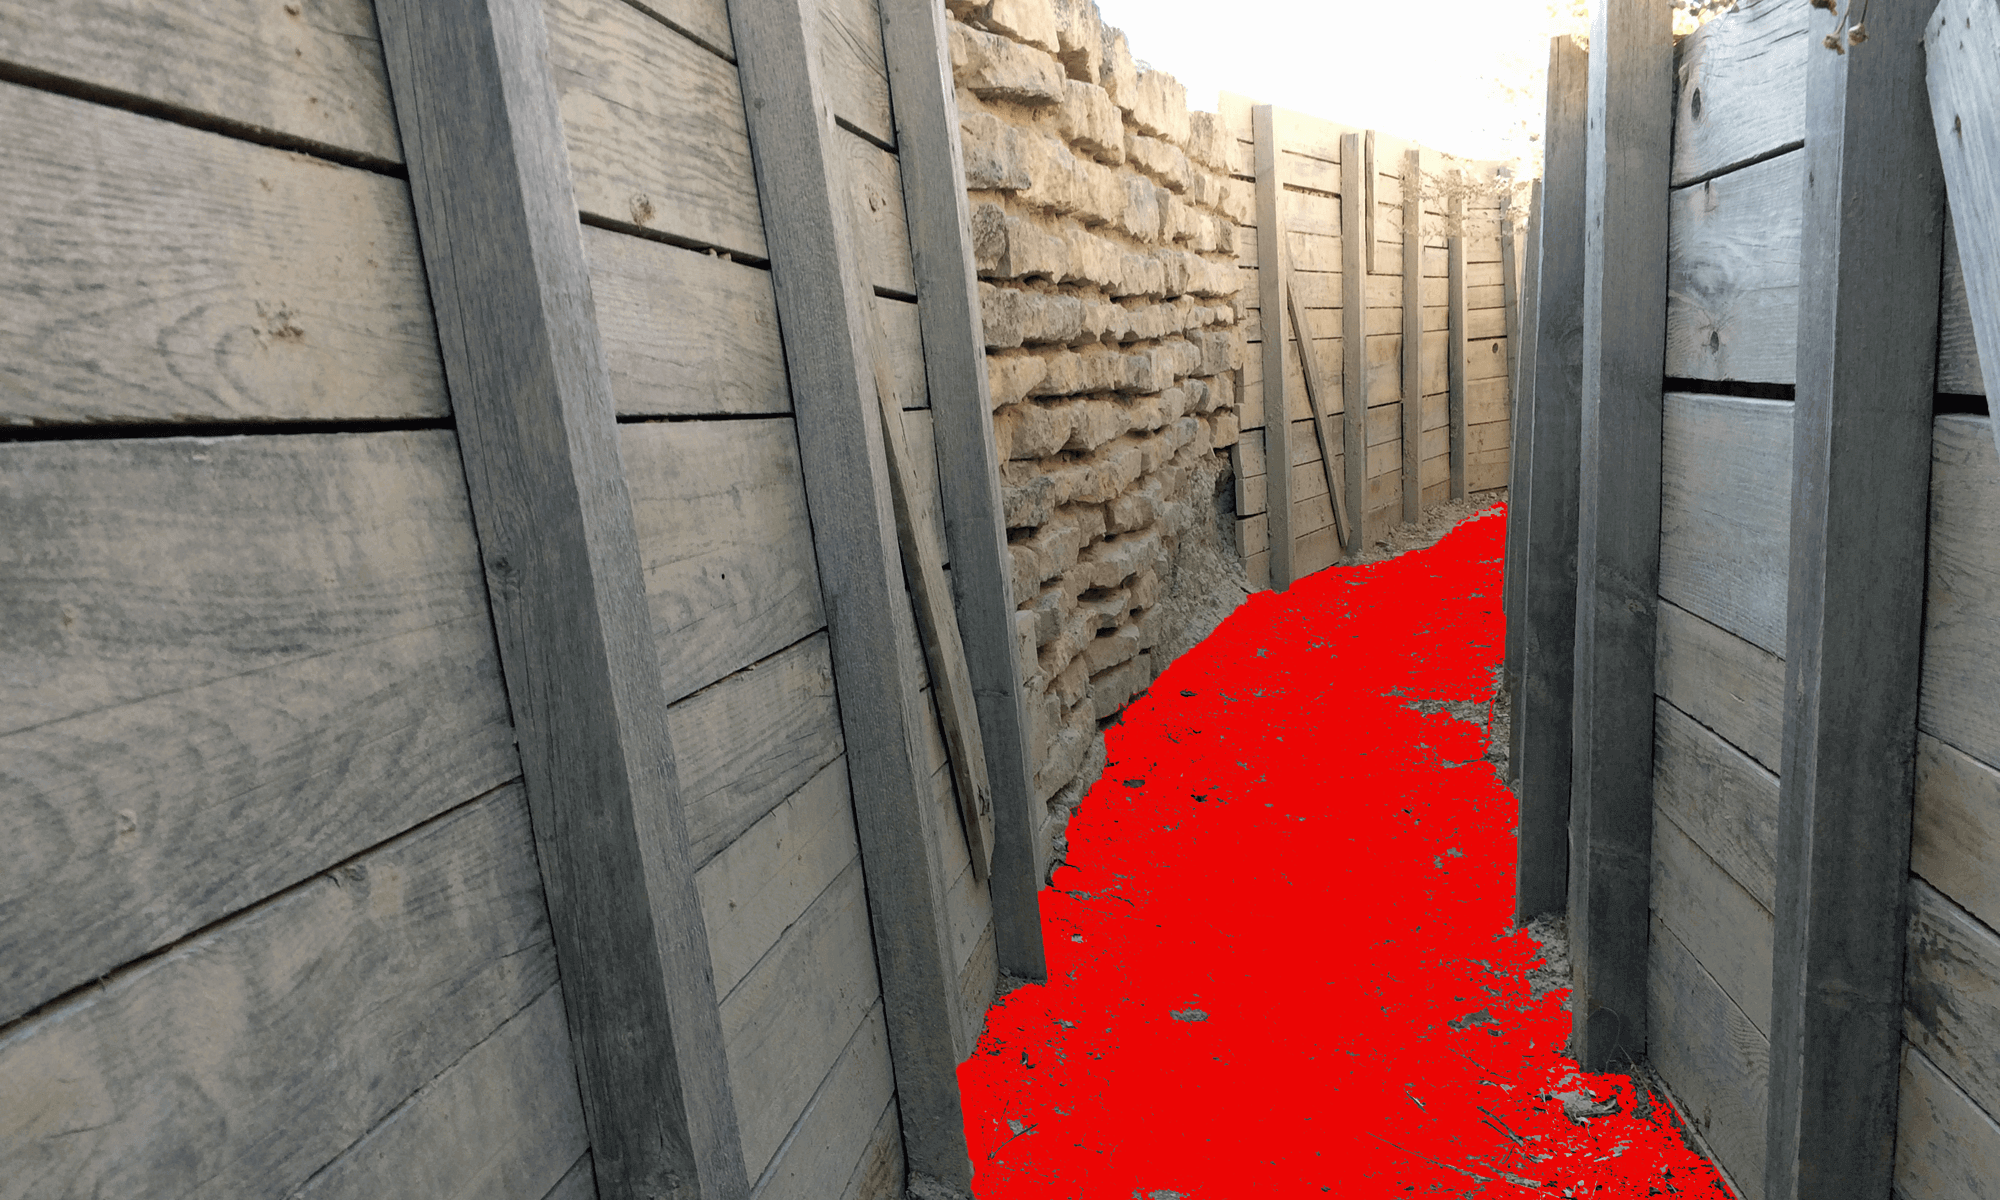 George Orwell Trenches in the Monegros, Spain | Burningmax Land Art Installation